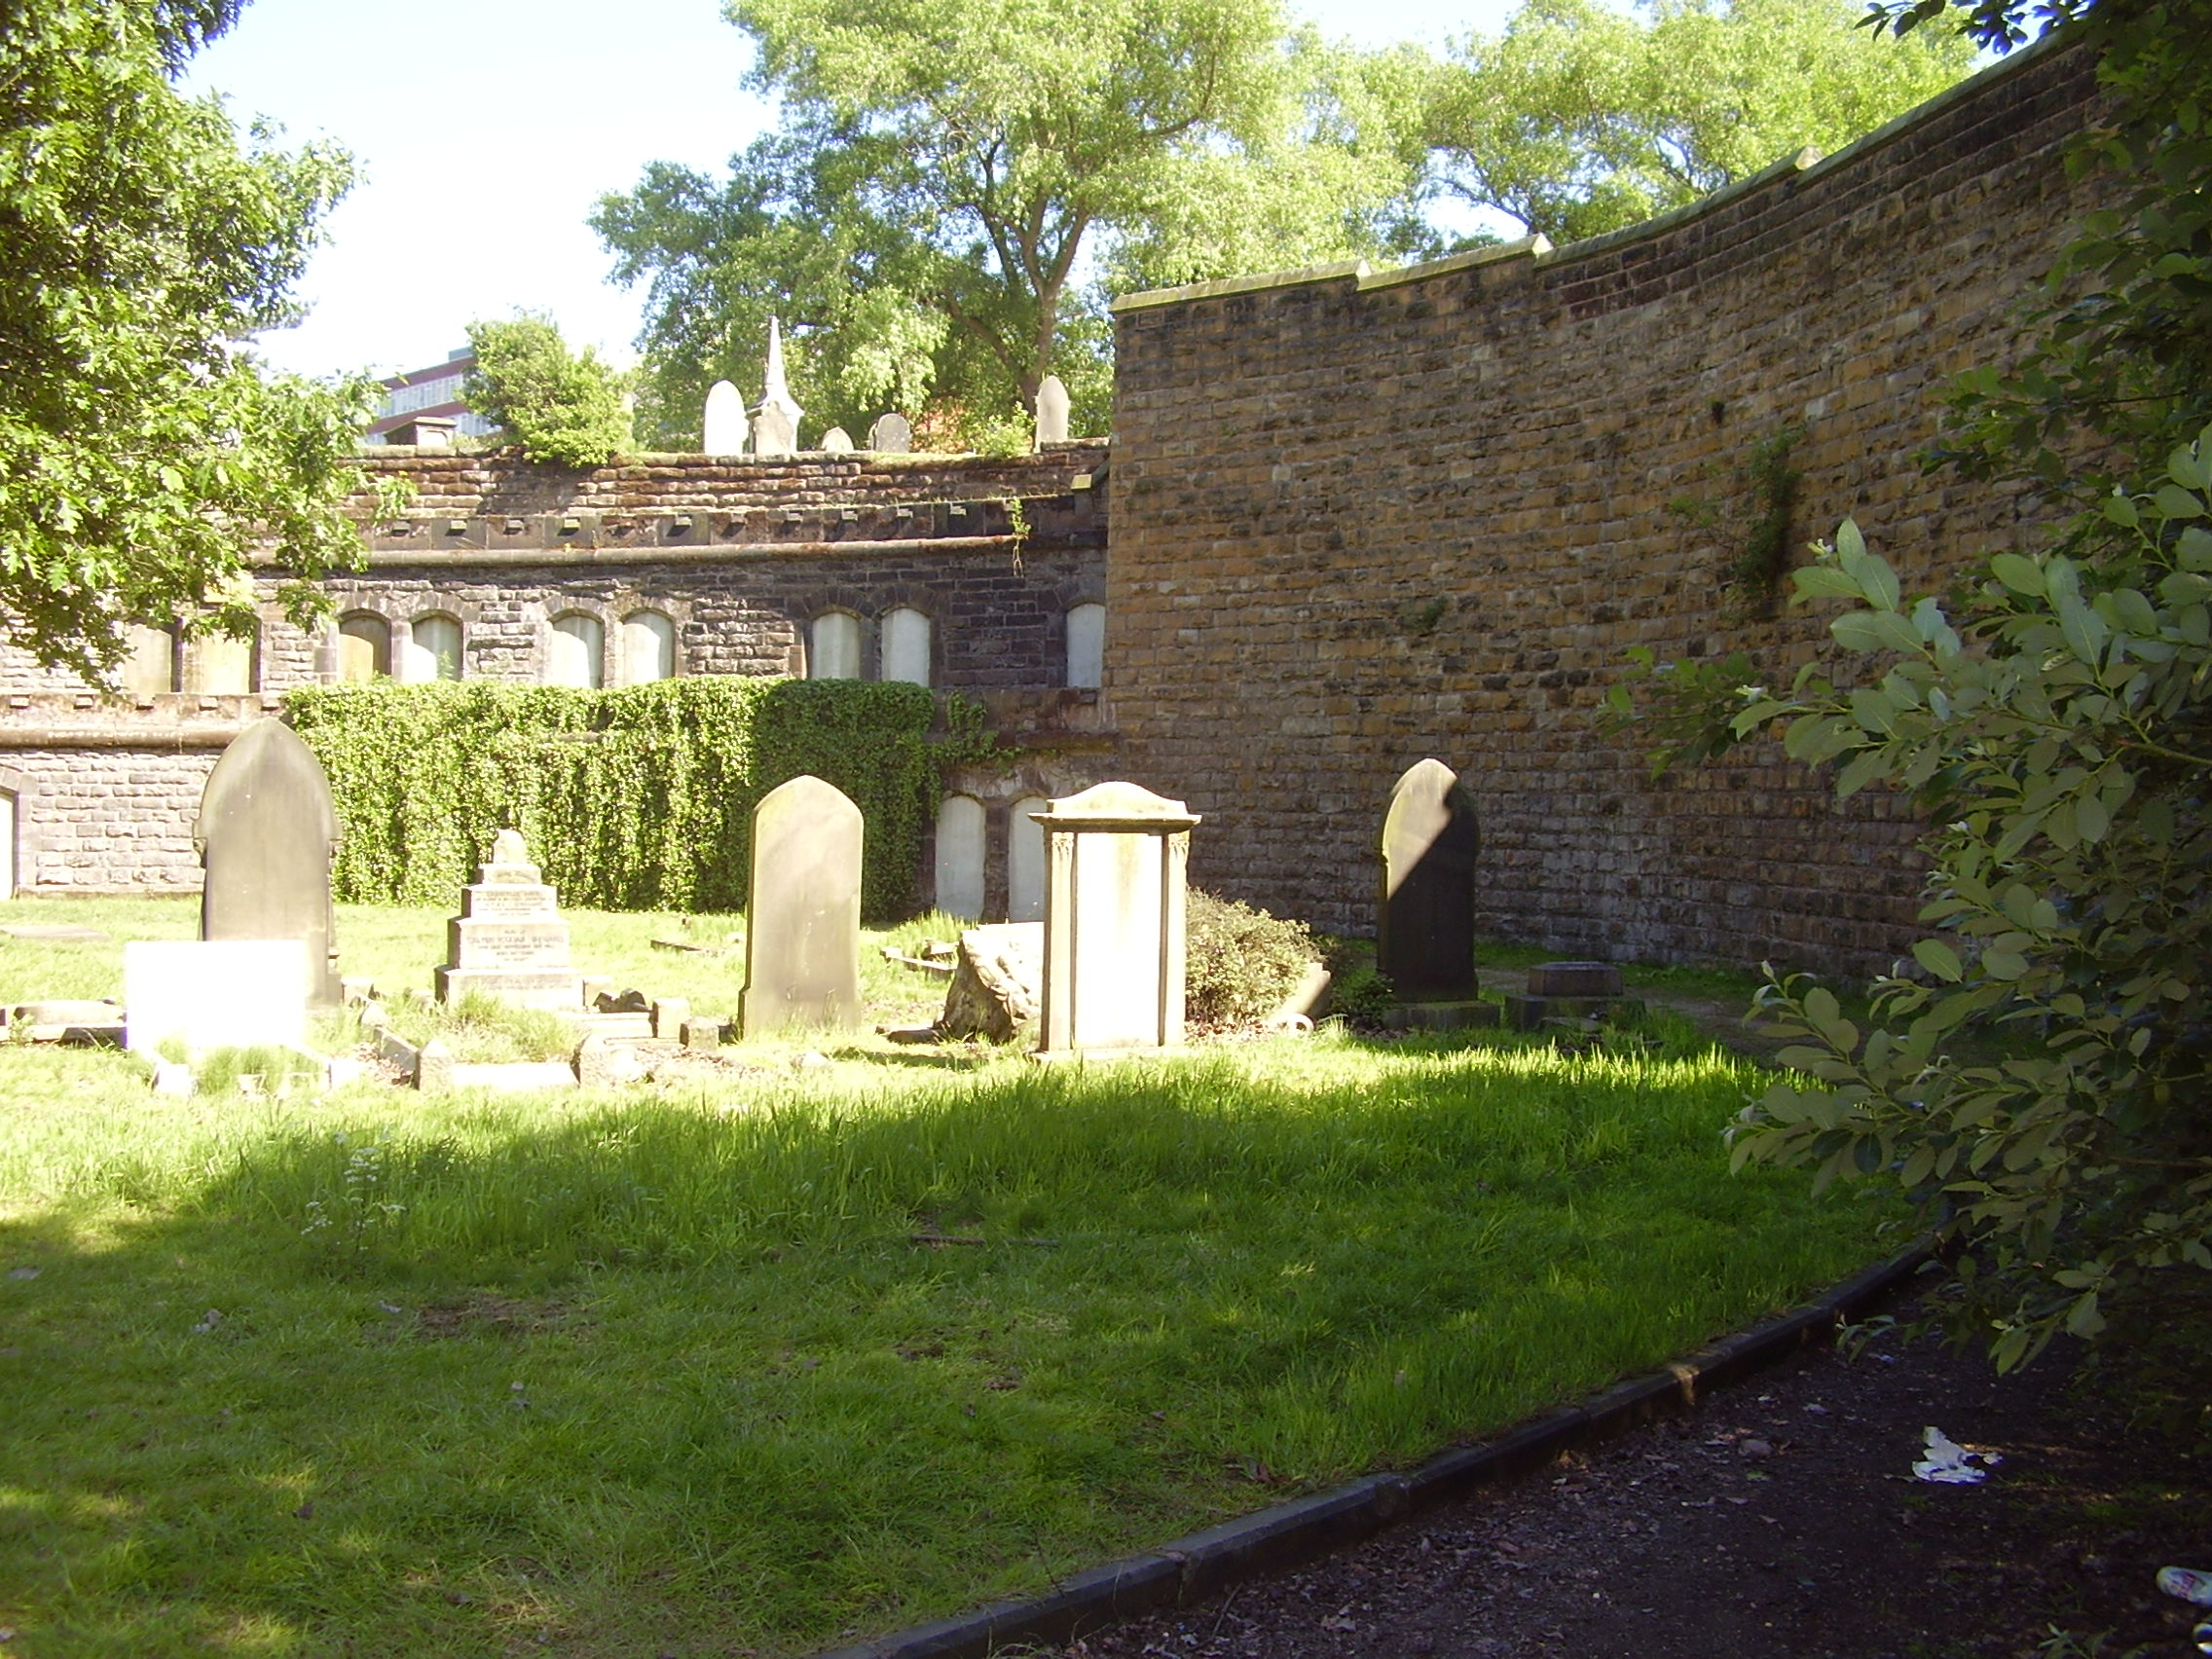 2008 Warstone Lane (Mint) Cemetery Catacombs in Birmingham's Jewellery Quarter